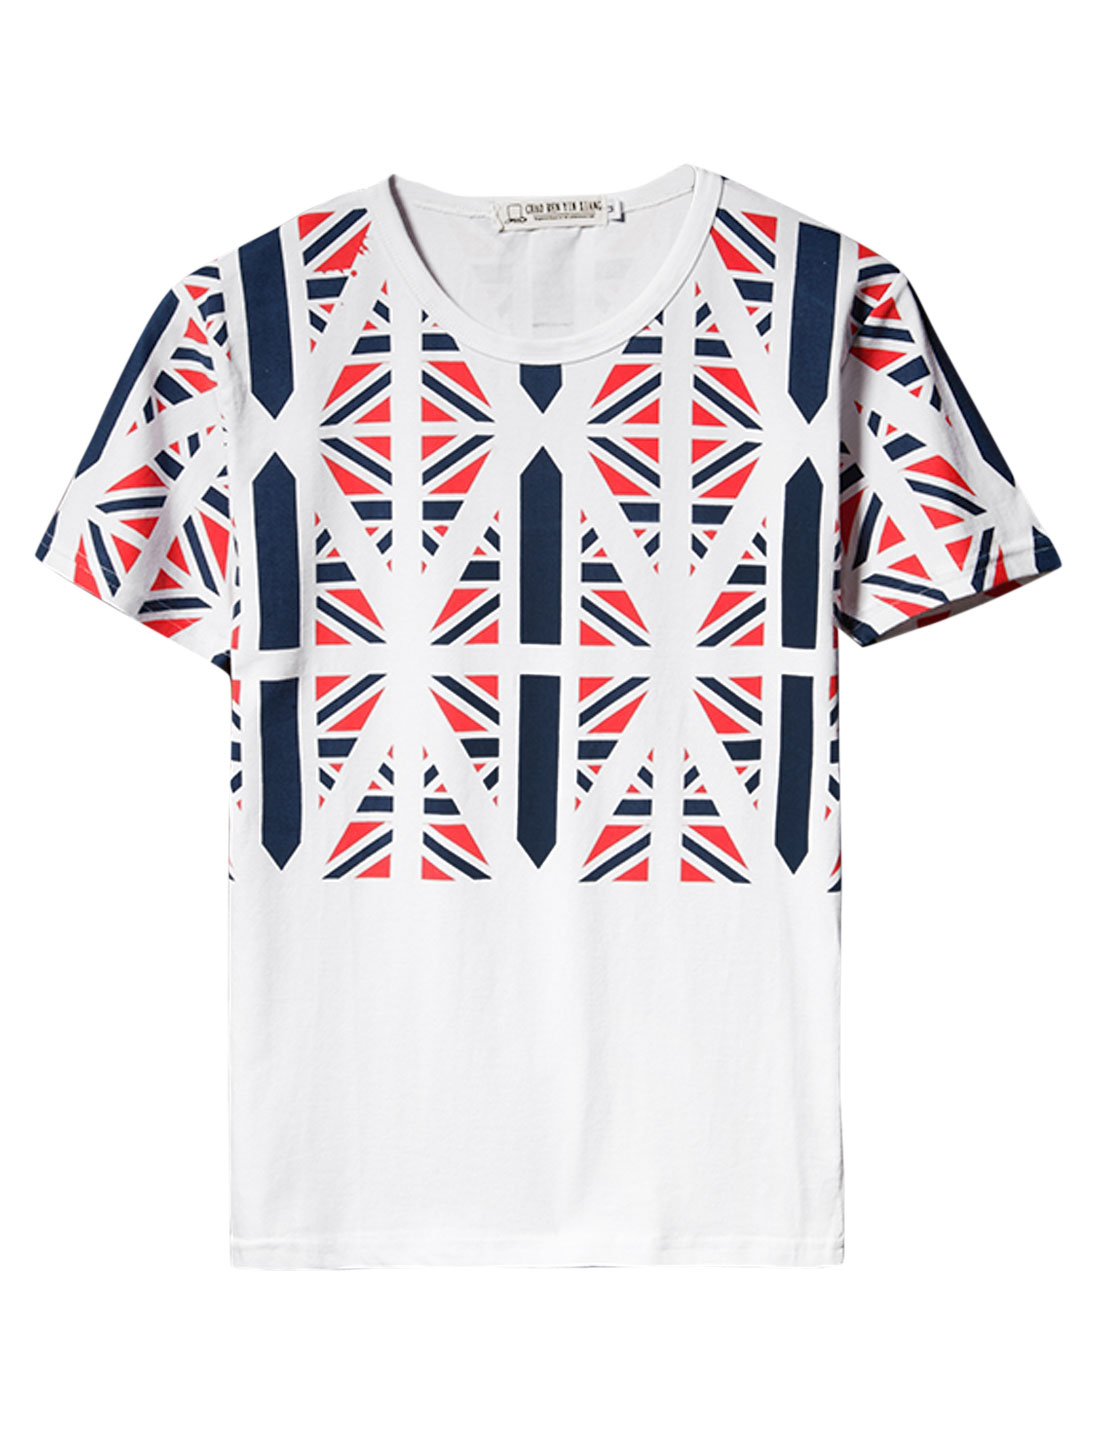 Men's Round Neck Union Jack Printed Pullover Short Sleeve T Shirt Multicolor M